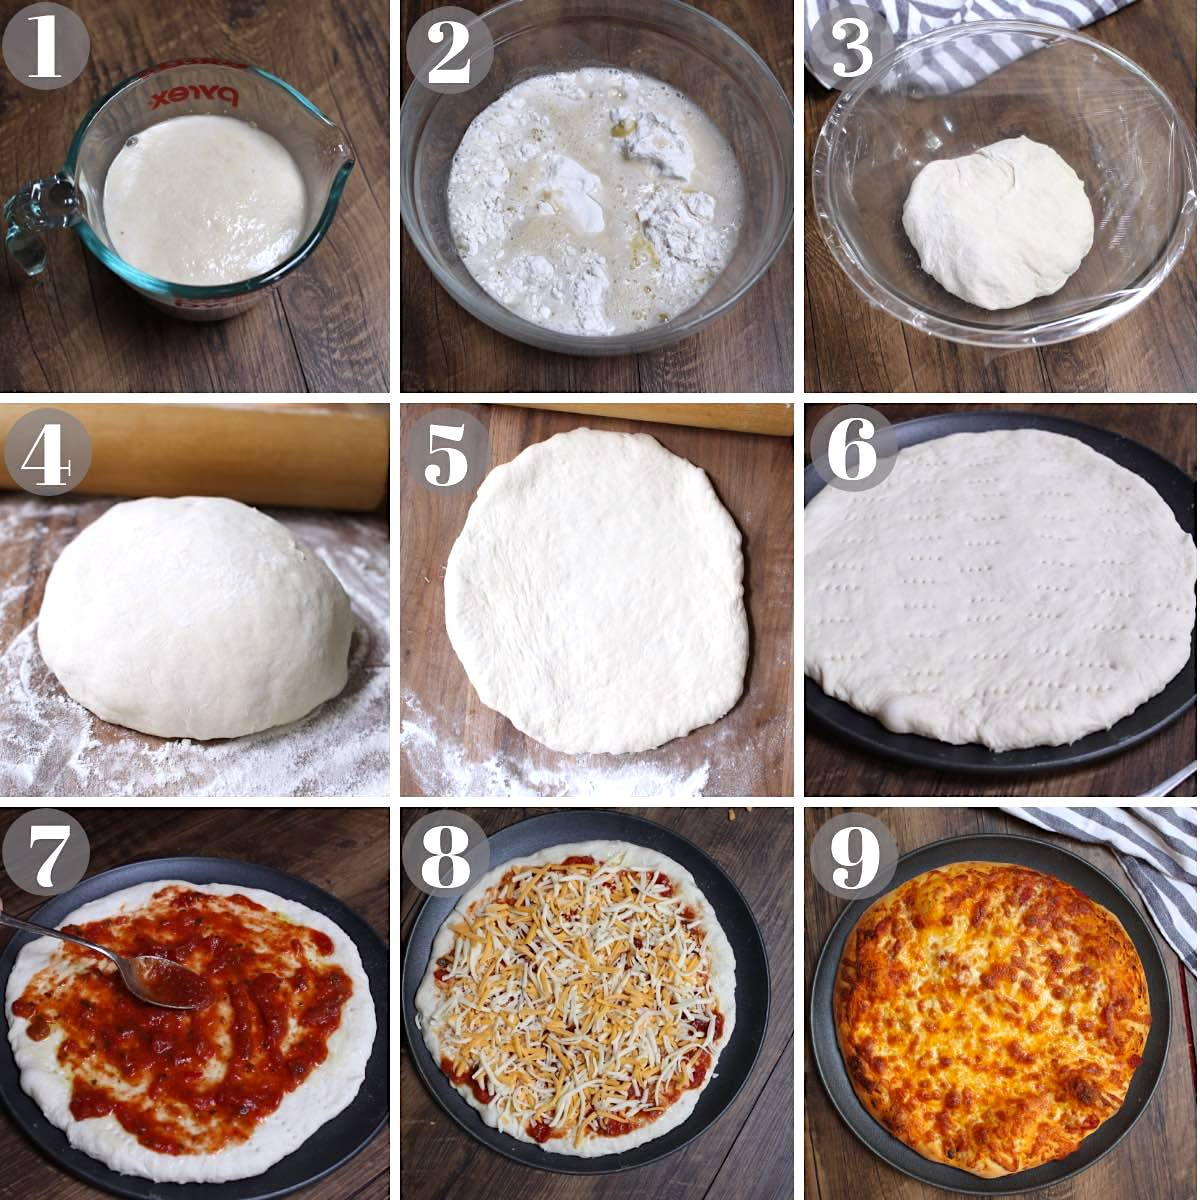 Pizza dough photo collage with 9 images showing the entire cooking process